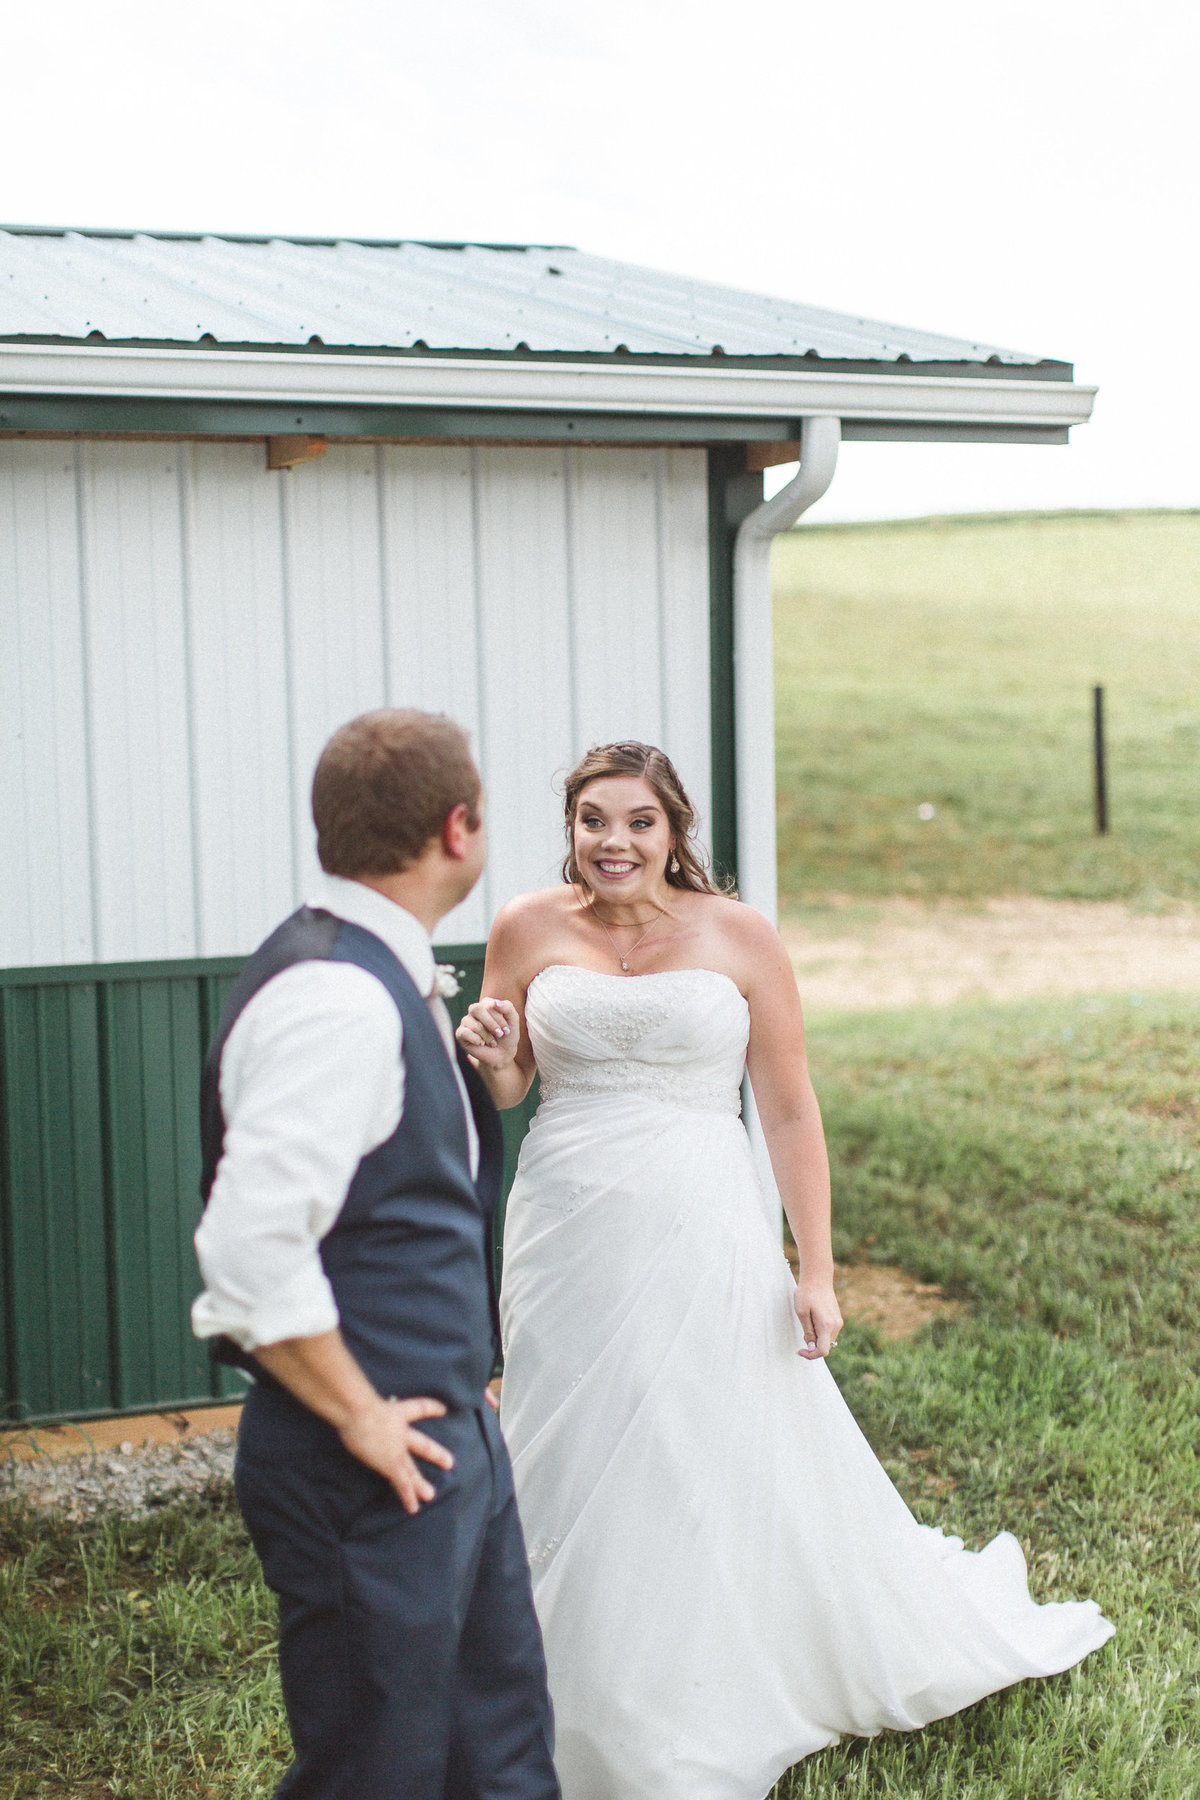 Columbus Wedding Photograpy - Zach + Faith - DiBlasio Photo-4889